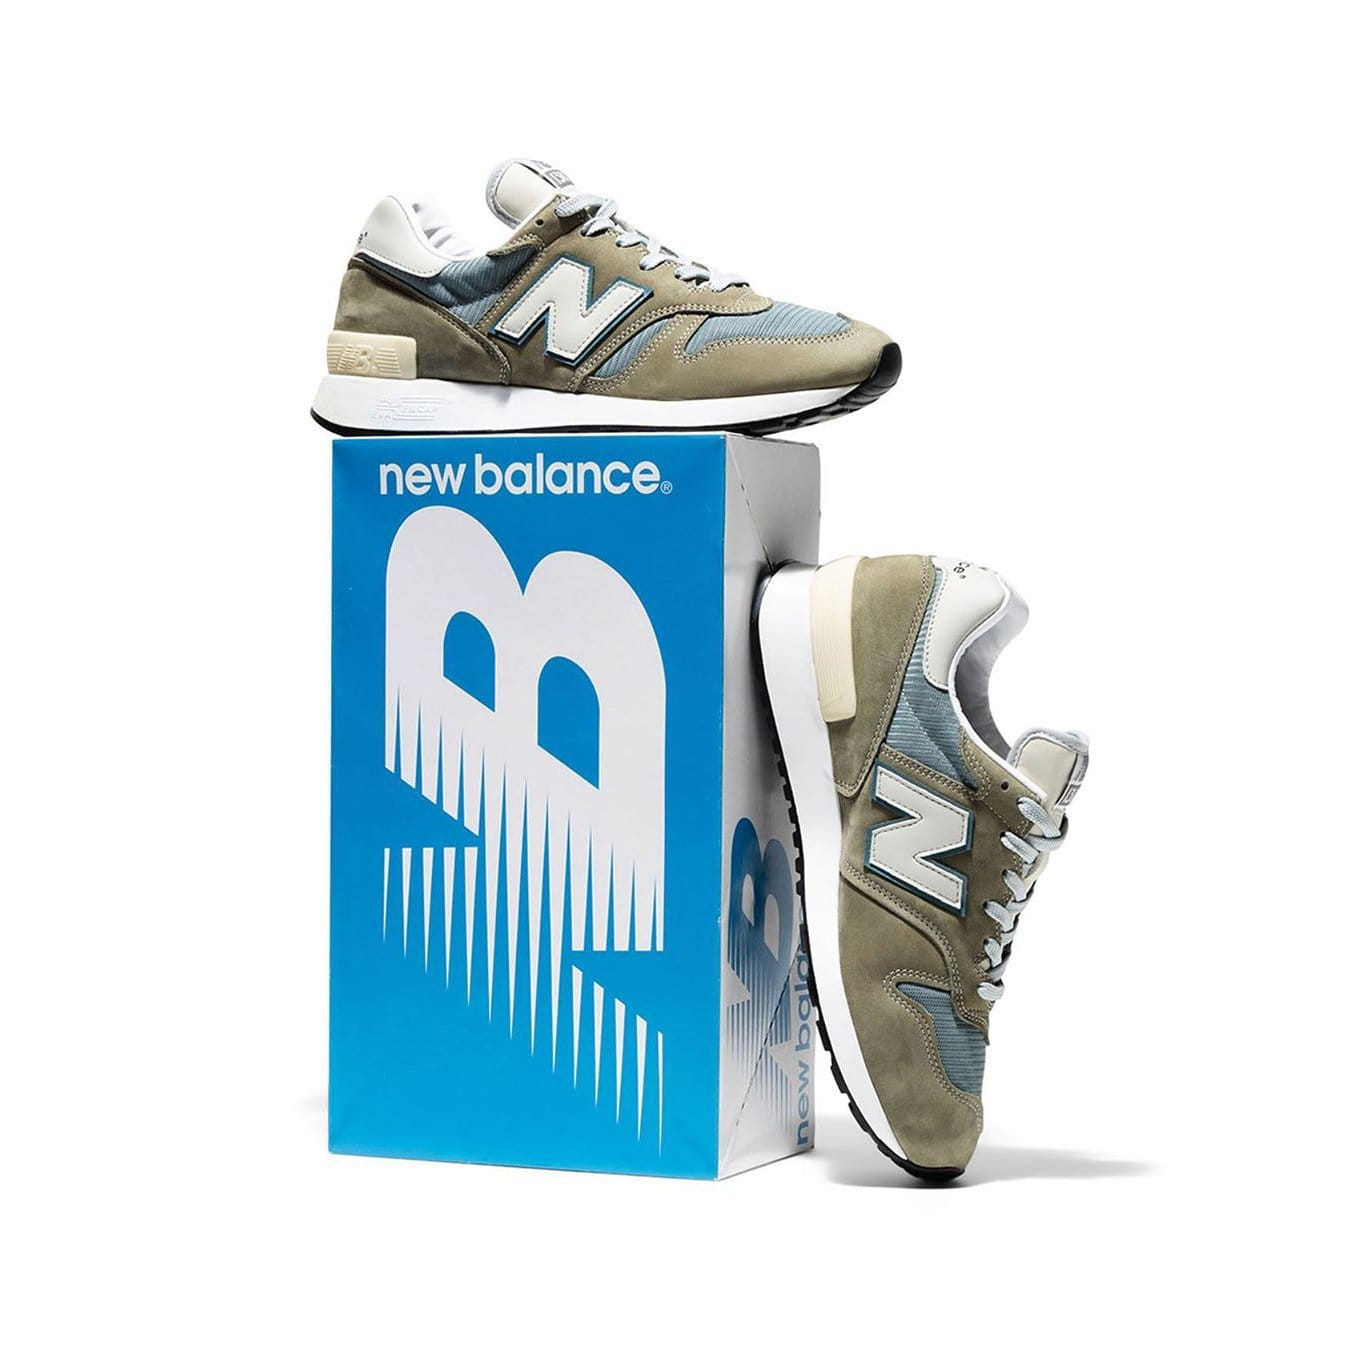 THE NEW BALANCE M1300JP3 RETURNS IN 2020